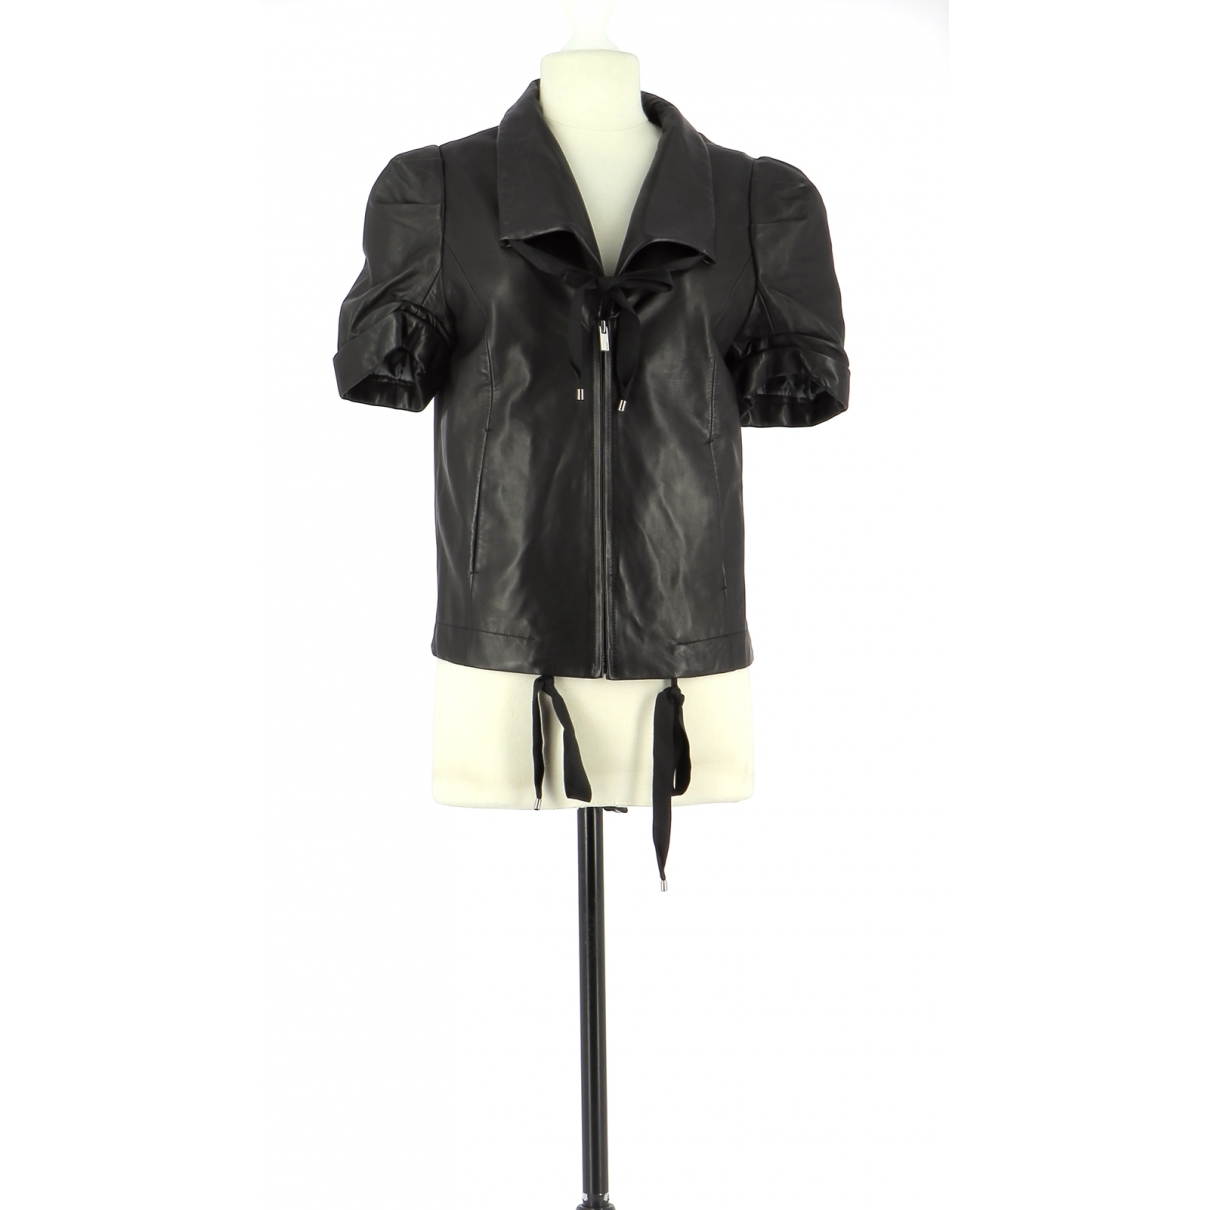 Bcbg Max Azria \N Black Leather jacket for Women 34 FR